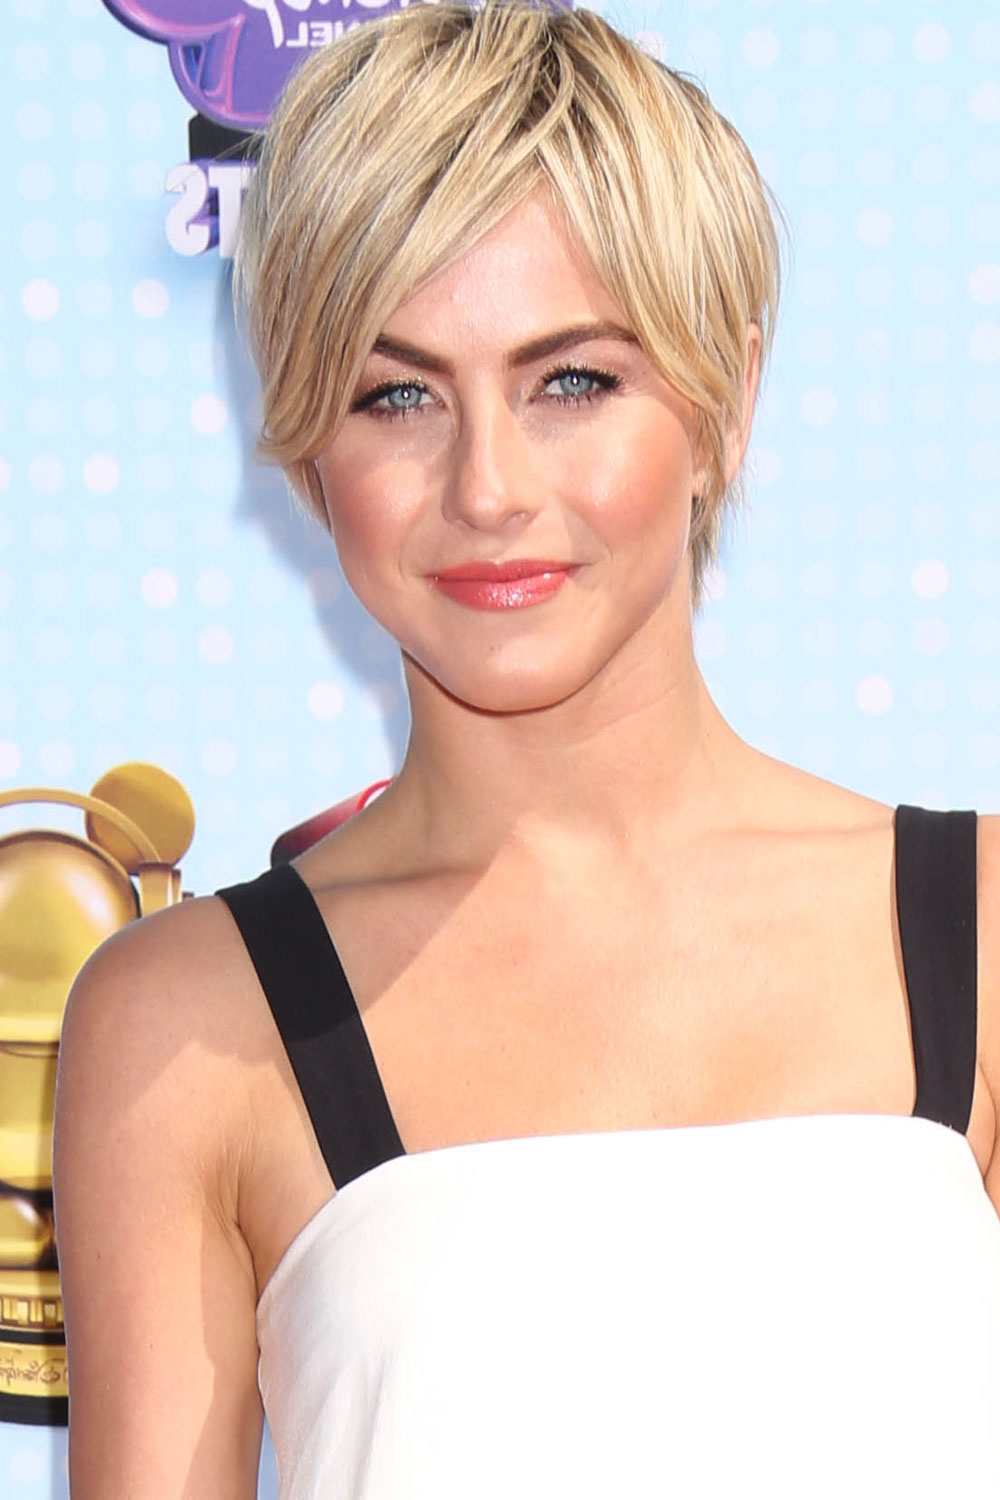 Short Hairstyle Inspiration From Celebrities | Haircuts, Hairstyles With Celebrities Short Haircuts (View 23 of 25)